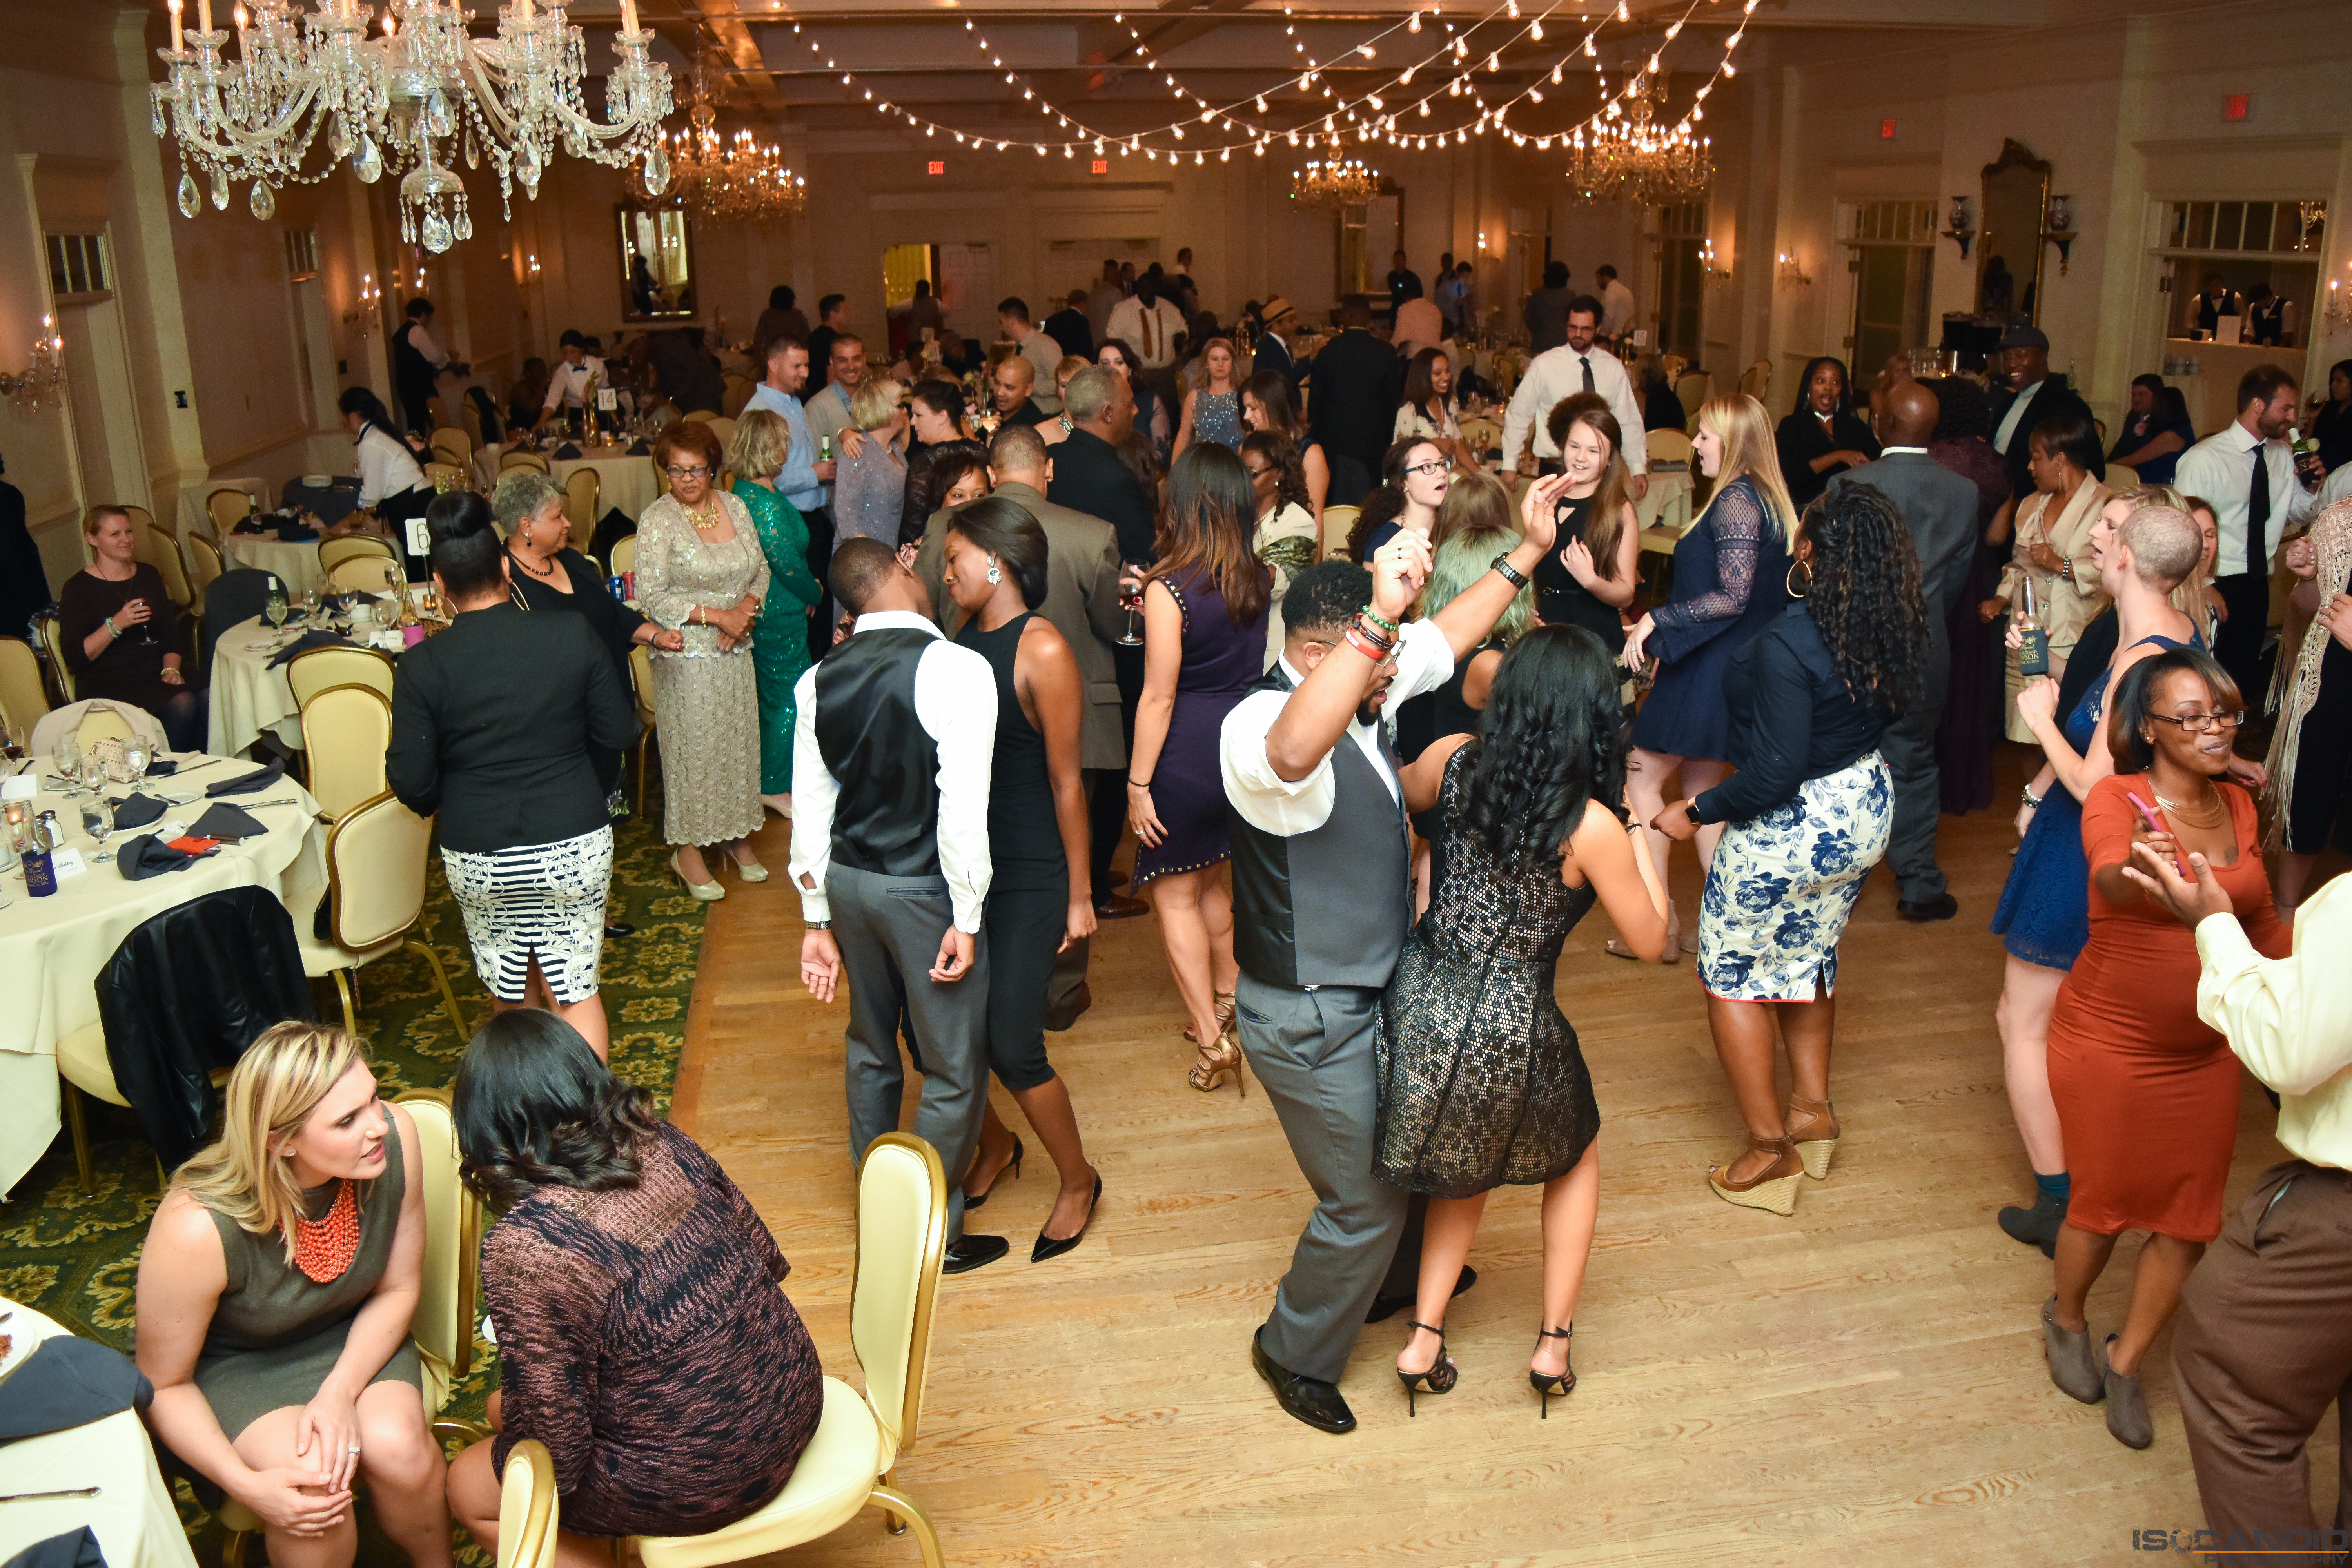 Parties & Special Events Videography